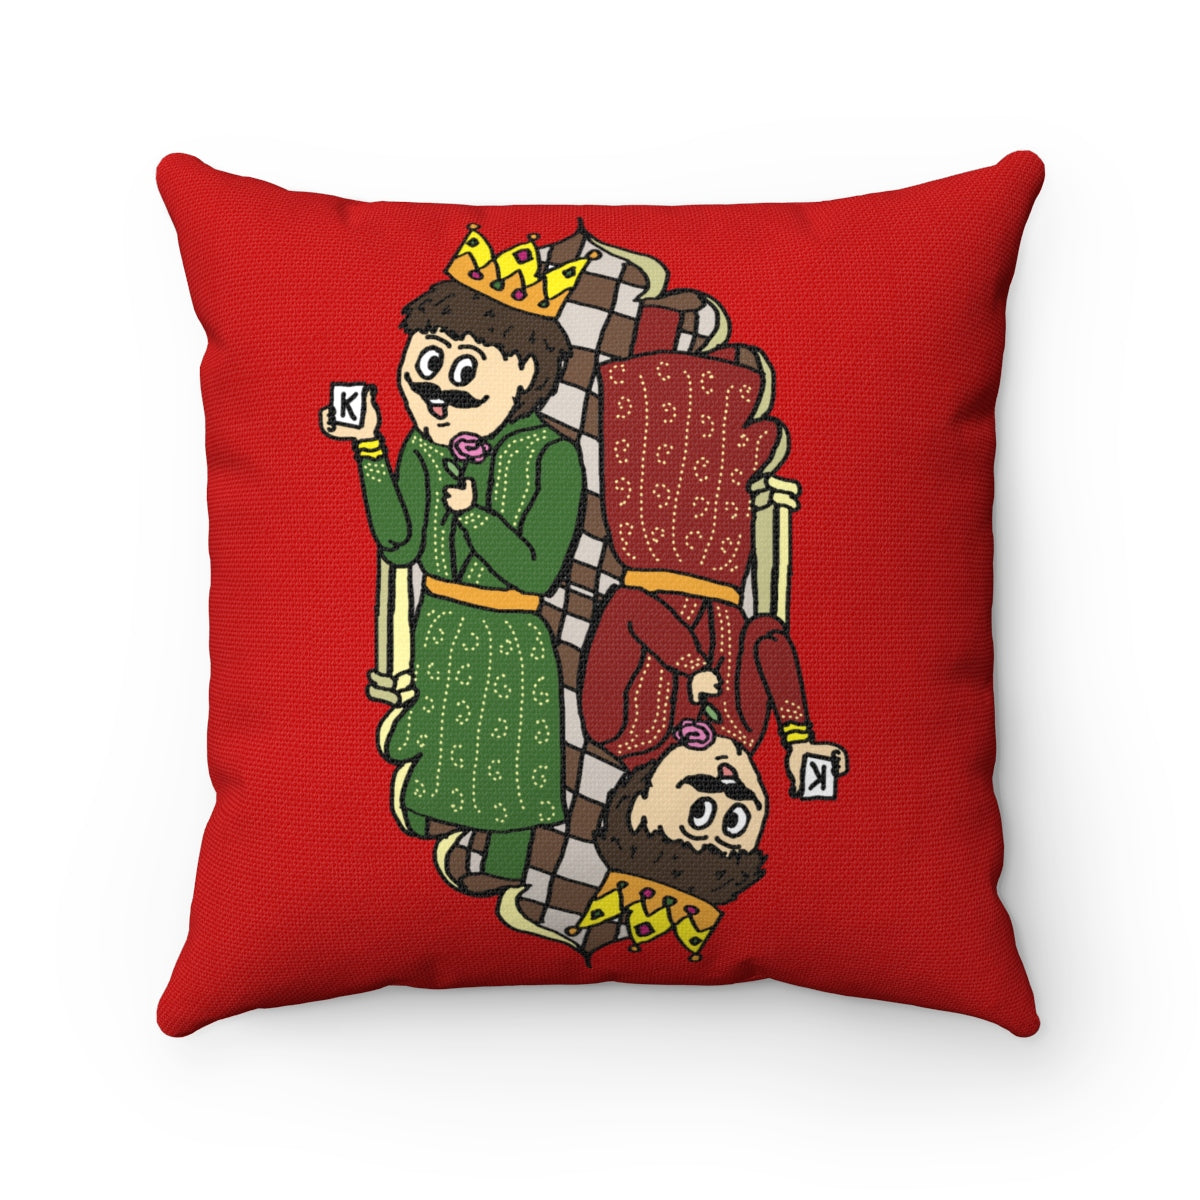 King of my Heart Spun Polyester Square Pillow Case Red